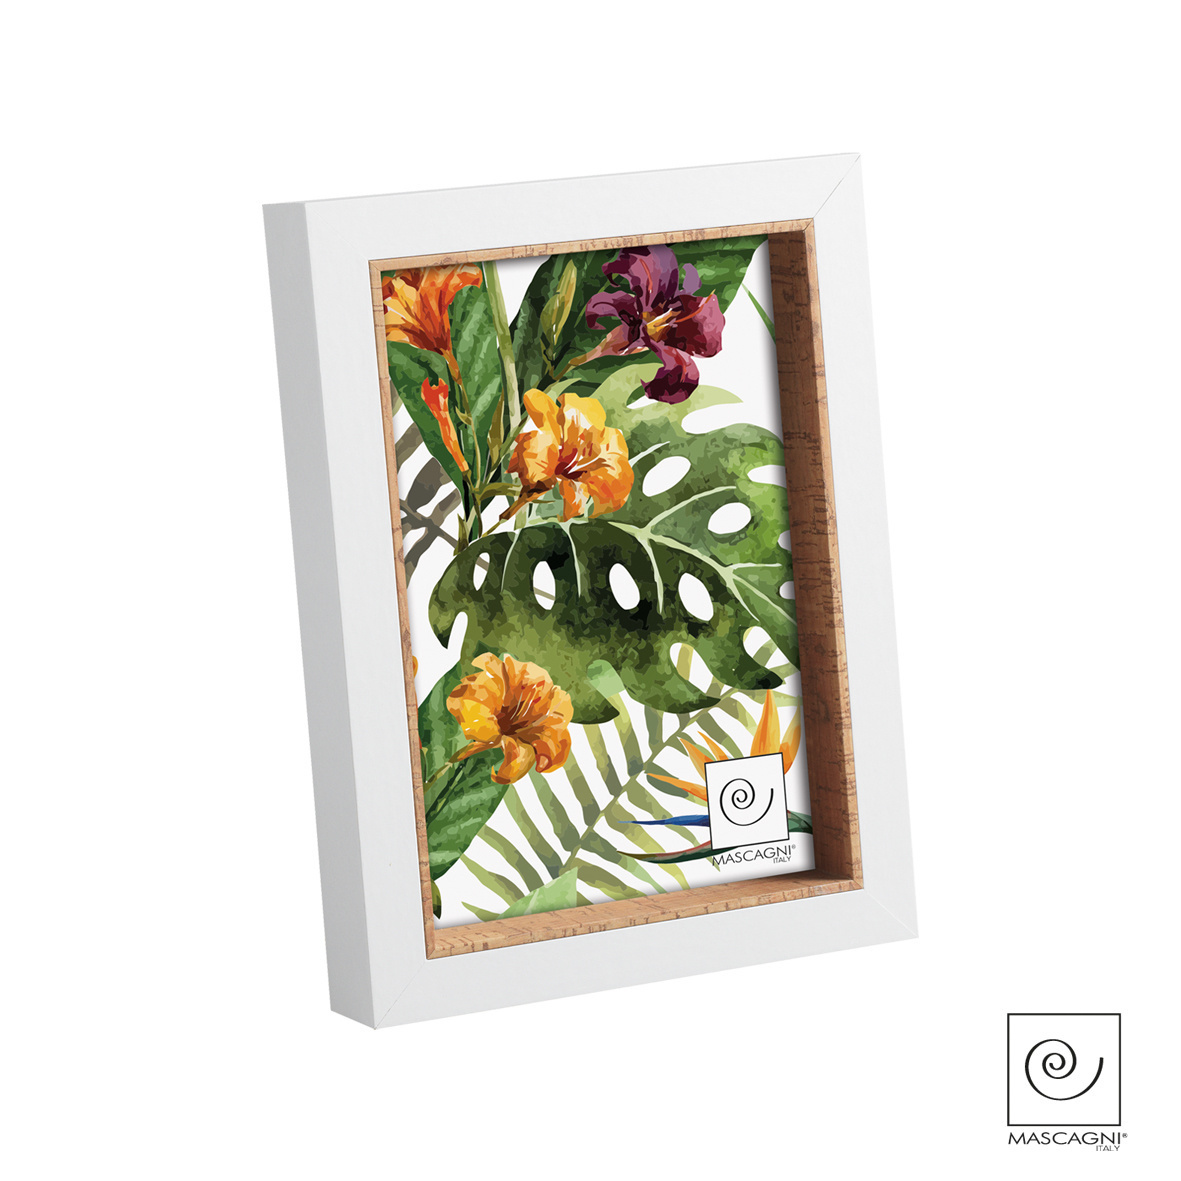 Art Mascagni A877 PHOTO FRAME 13X18 - COL.WHITE